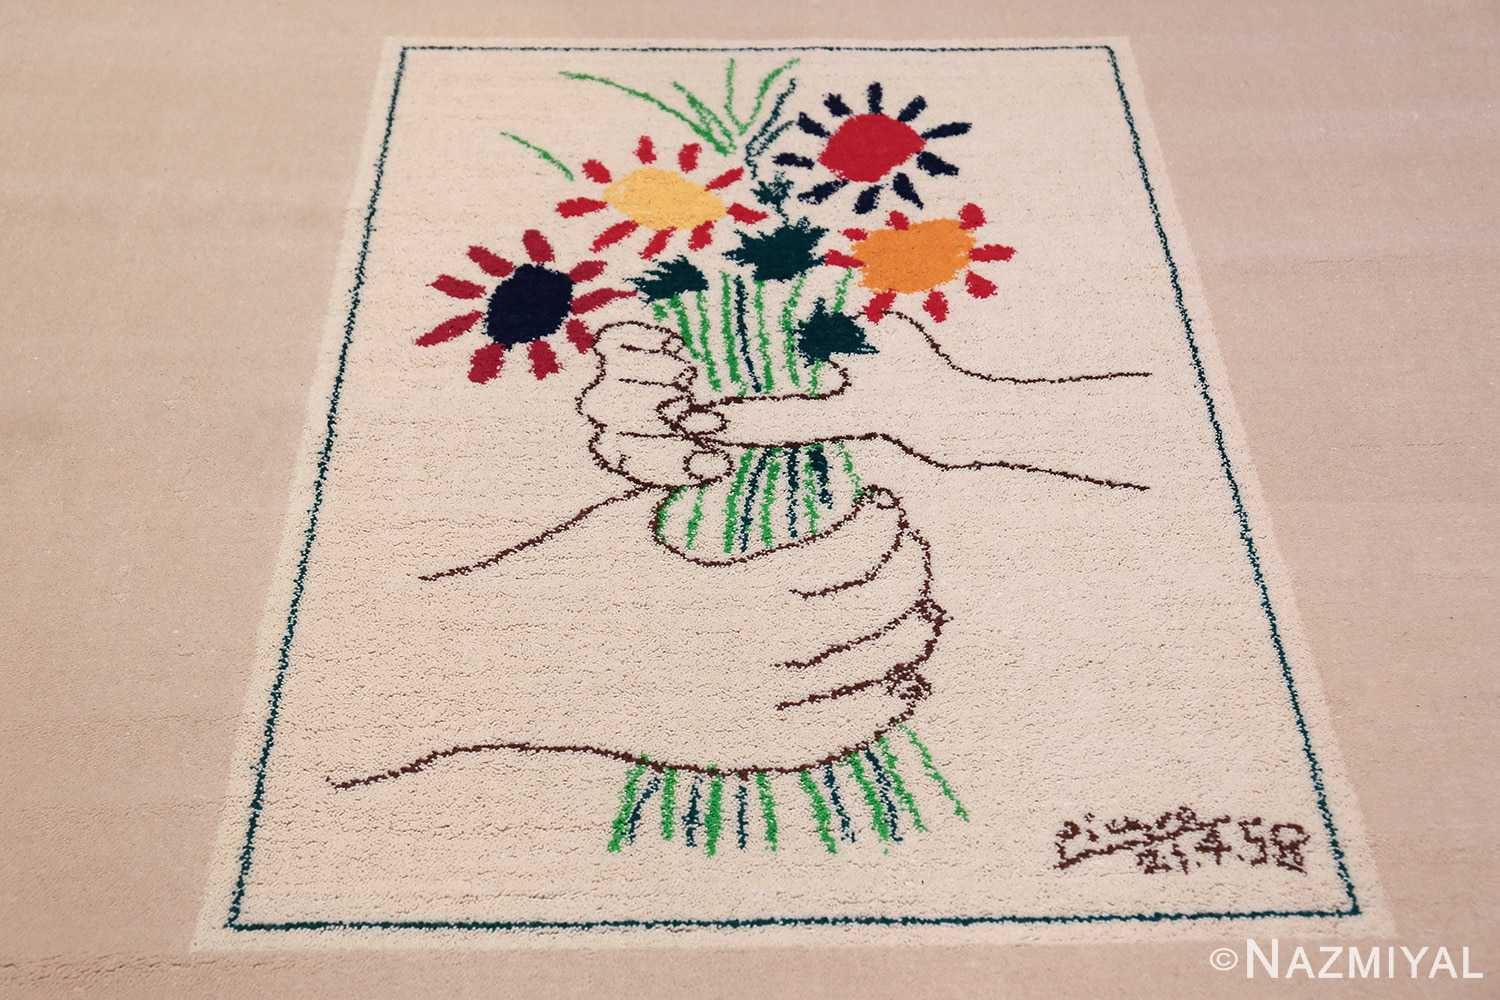 Vintage Le Bouquet Wall Tapestry Rug by Artist Pablo Picasso 48958 Middle Design Nazmiyal